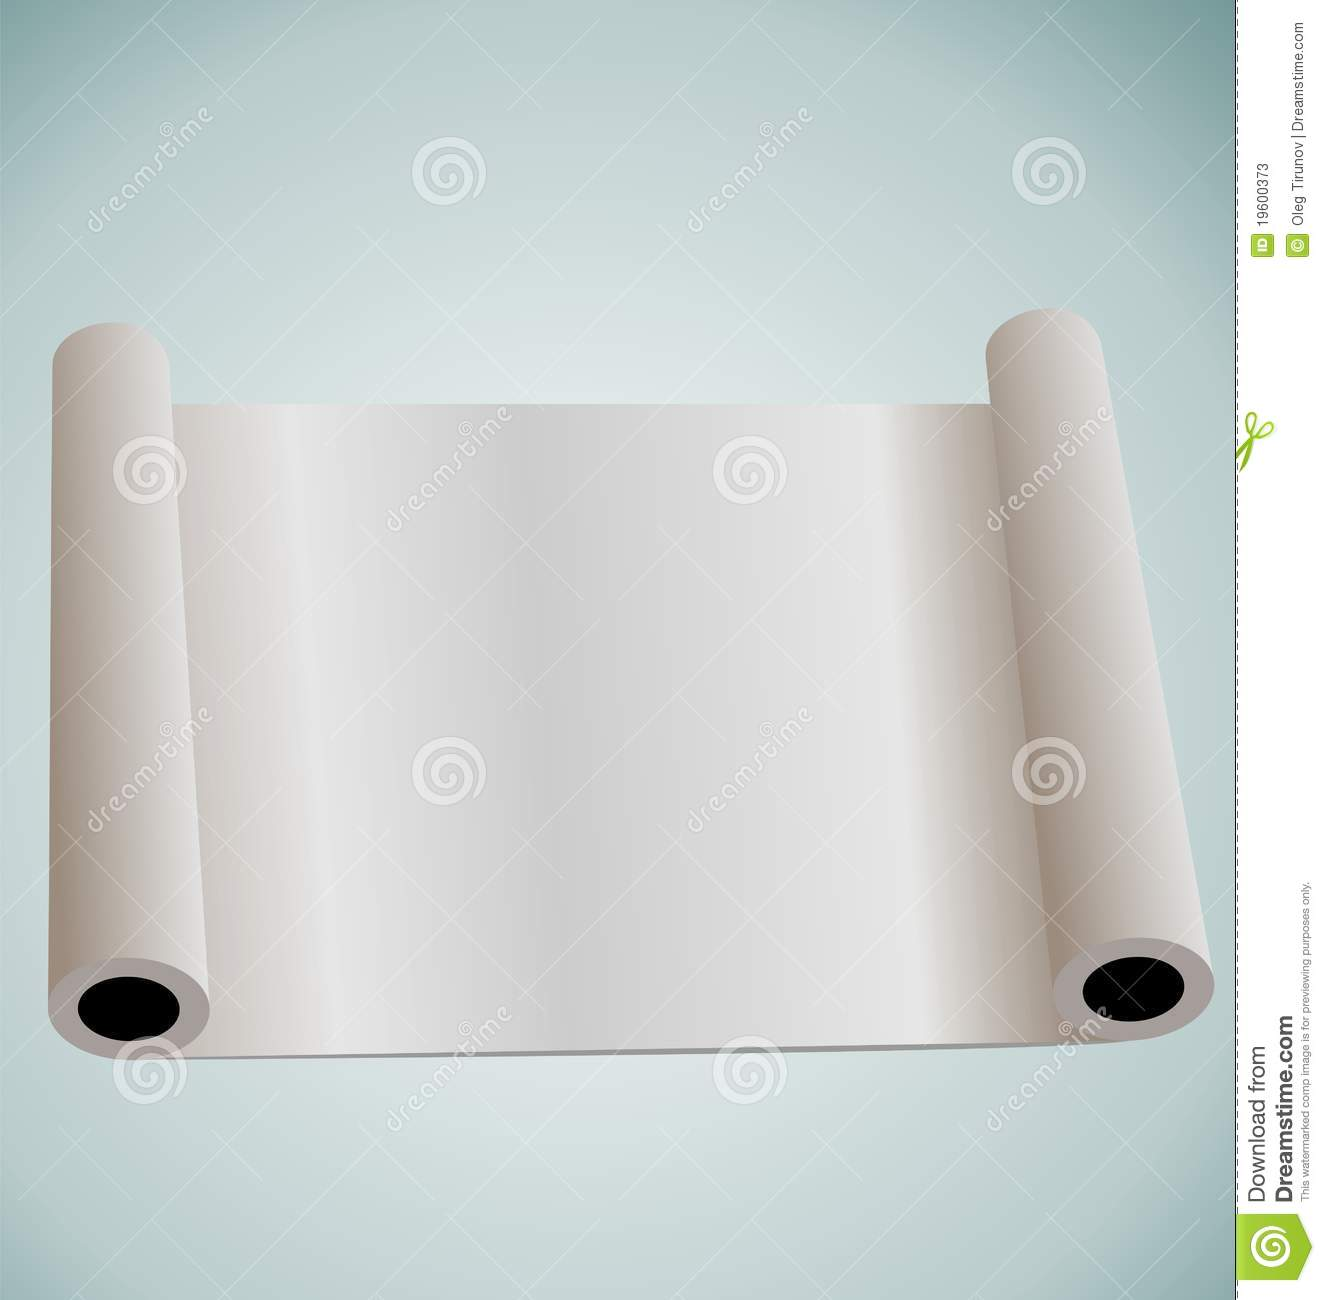 Blank paper roll for design